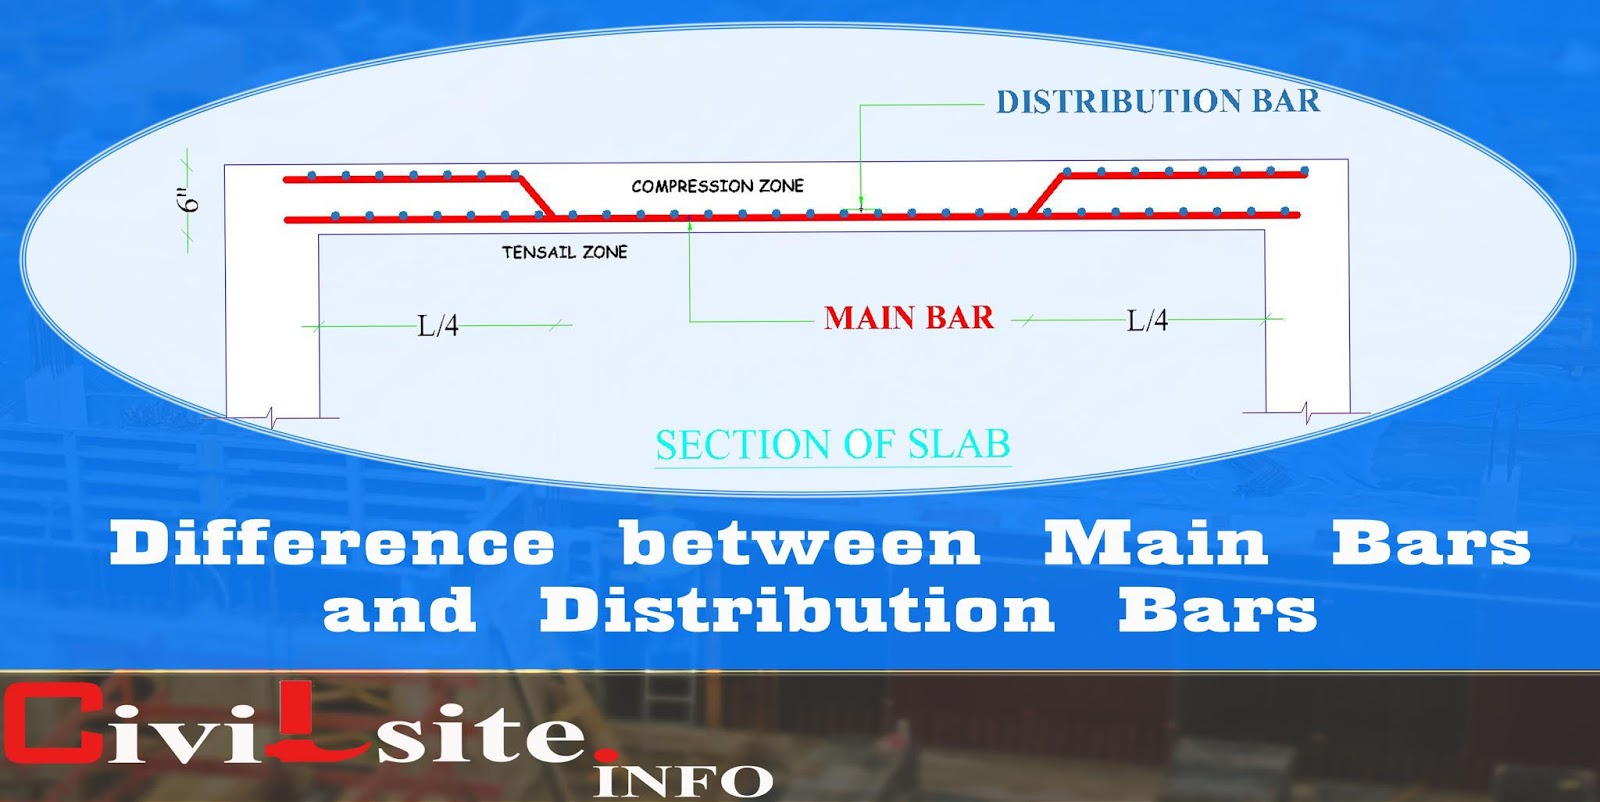 Difference between Main Bars and Distribution Bars